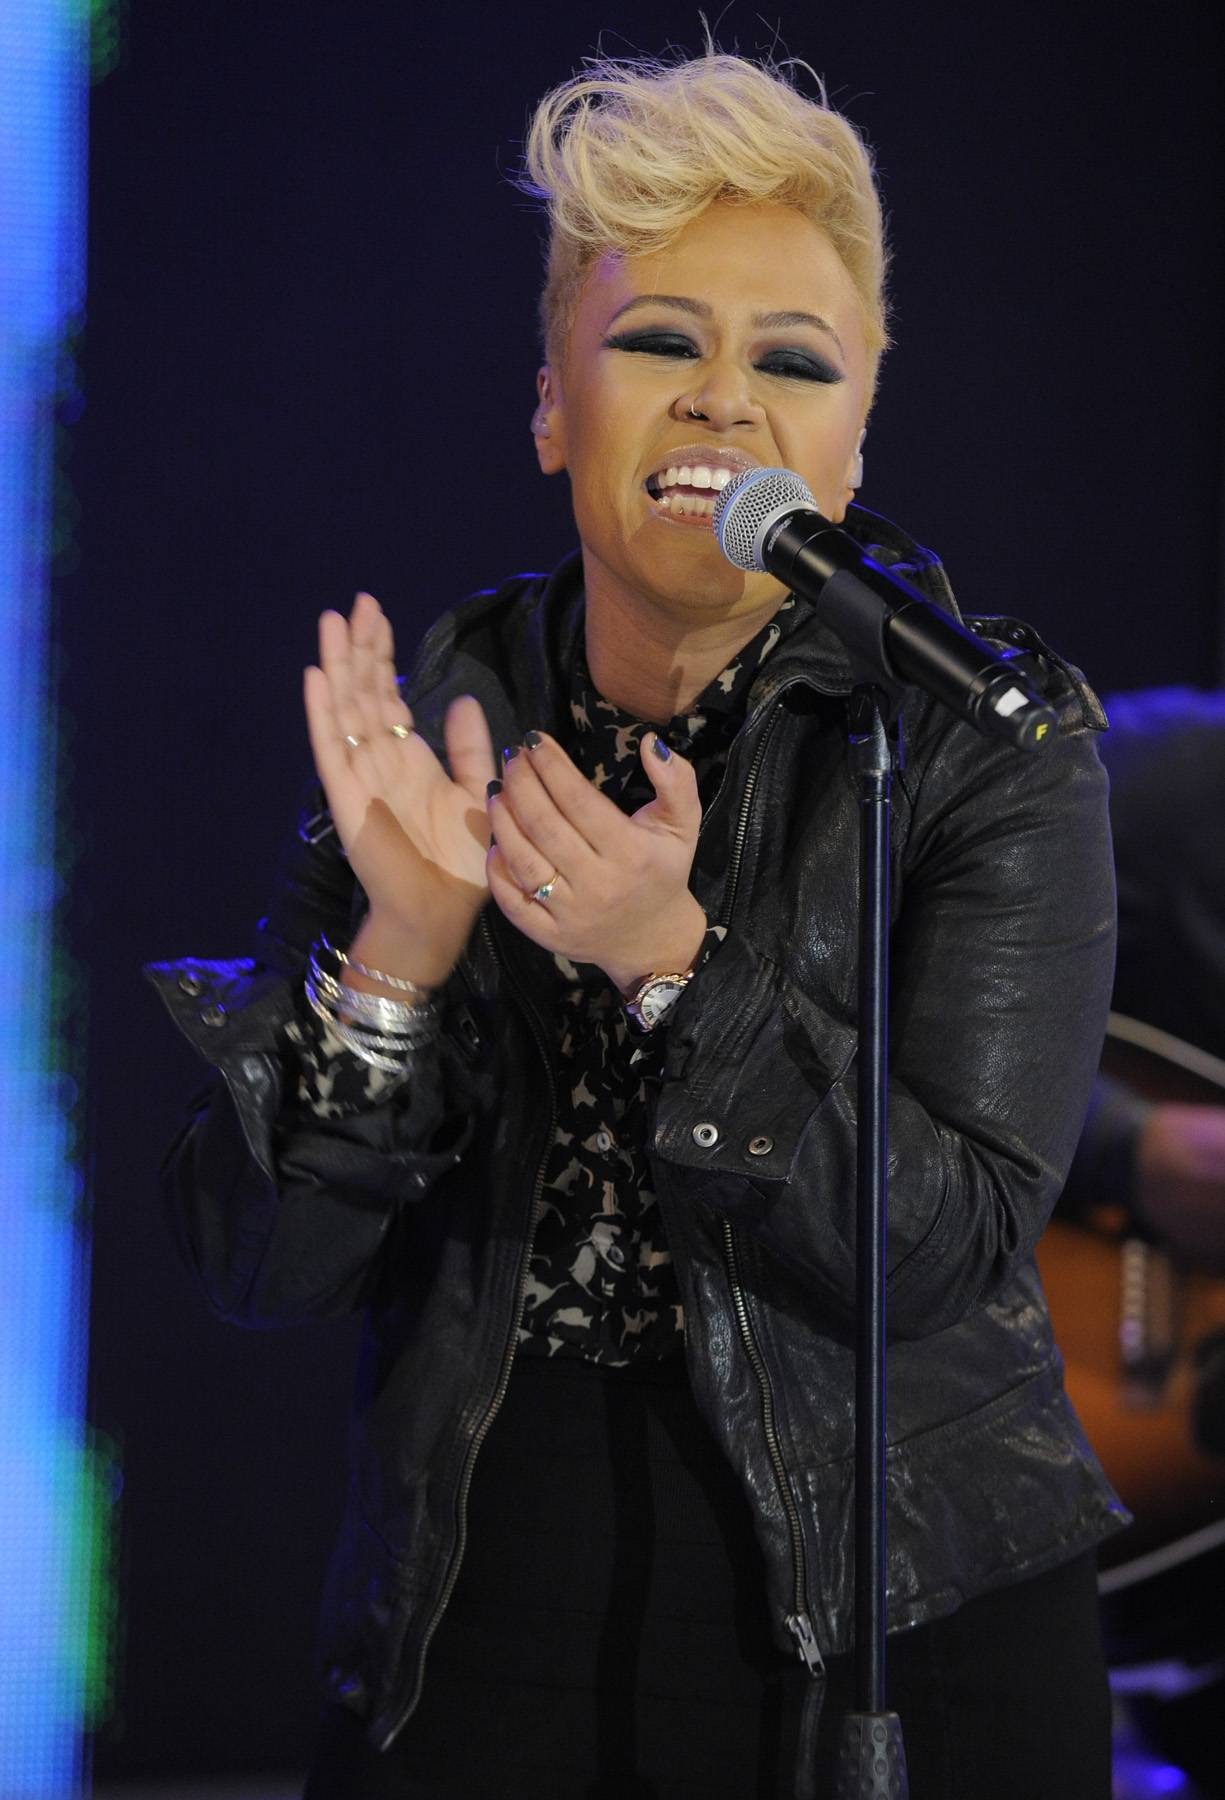 Fresh Face  - Although Emeli was new to the 106 audience, her debut album, Our Version of Events, is already No. 1 in the U.K. It's set for release in the states on June 5.(Photo: John Ricard/BET)